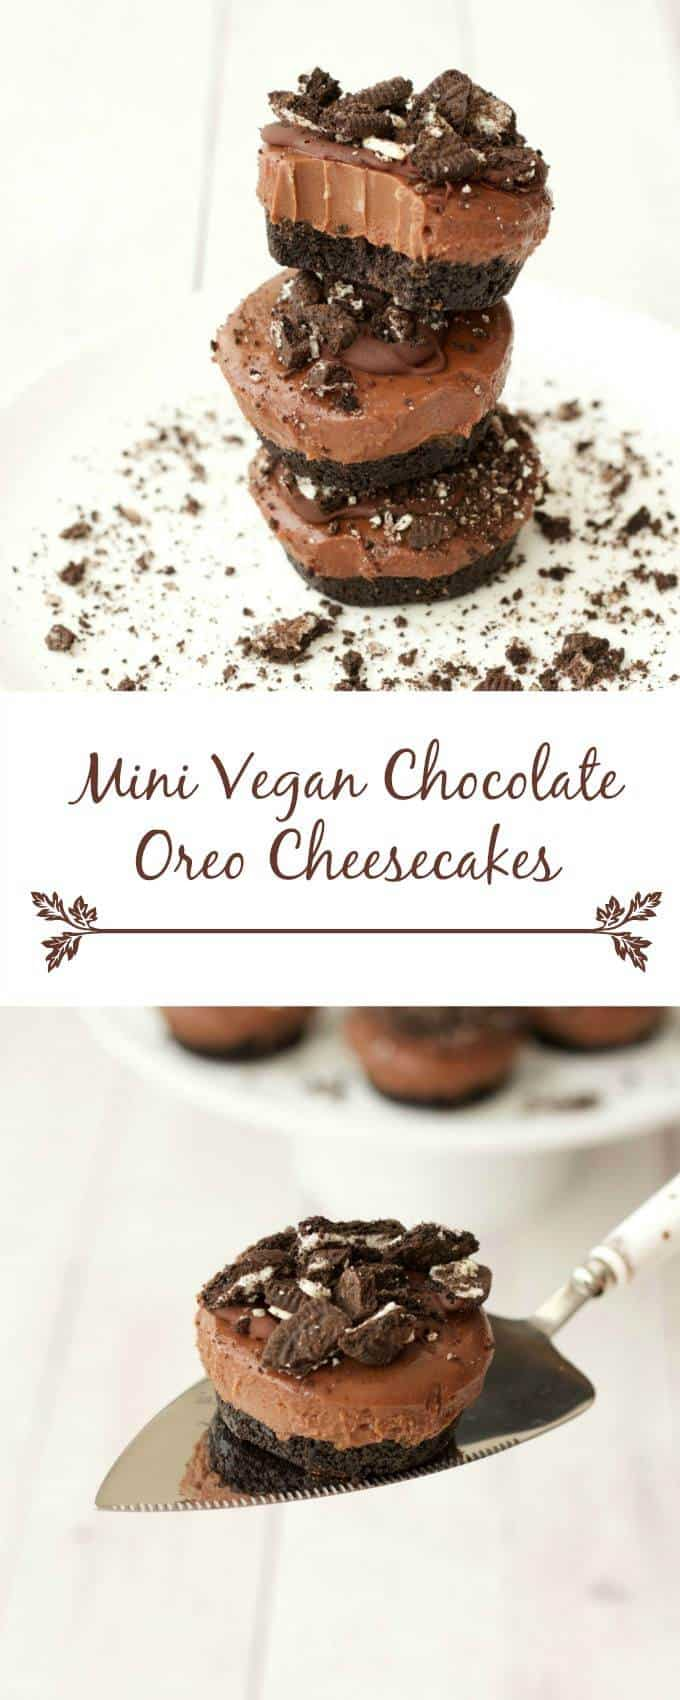 Mini Vegan Chocolate Cheesecakes #vegan #lovingitvegan #cheesecakes #dessert #dairyfree #oreos